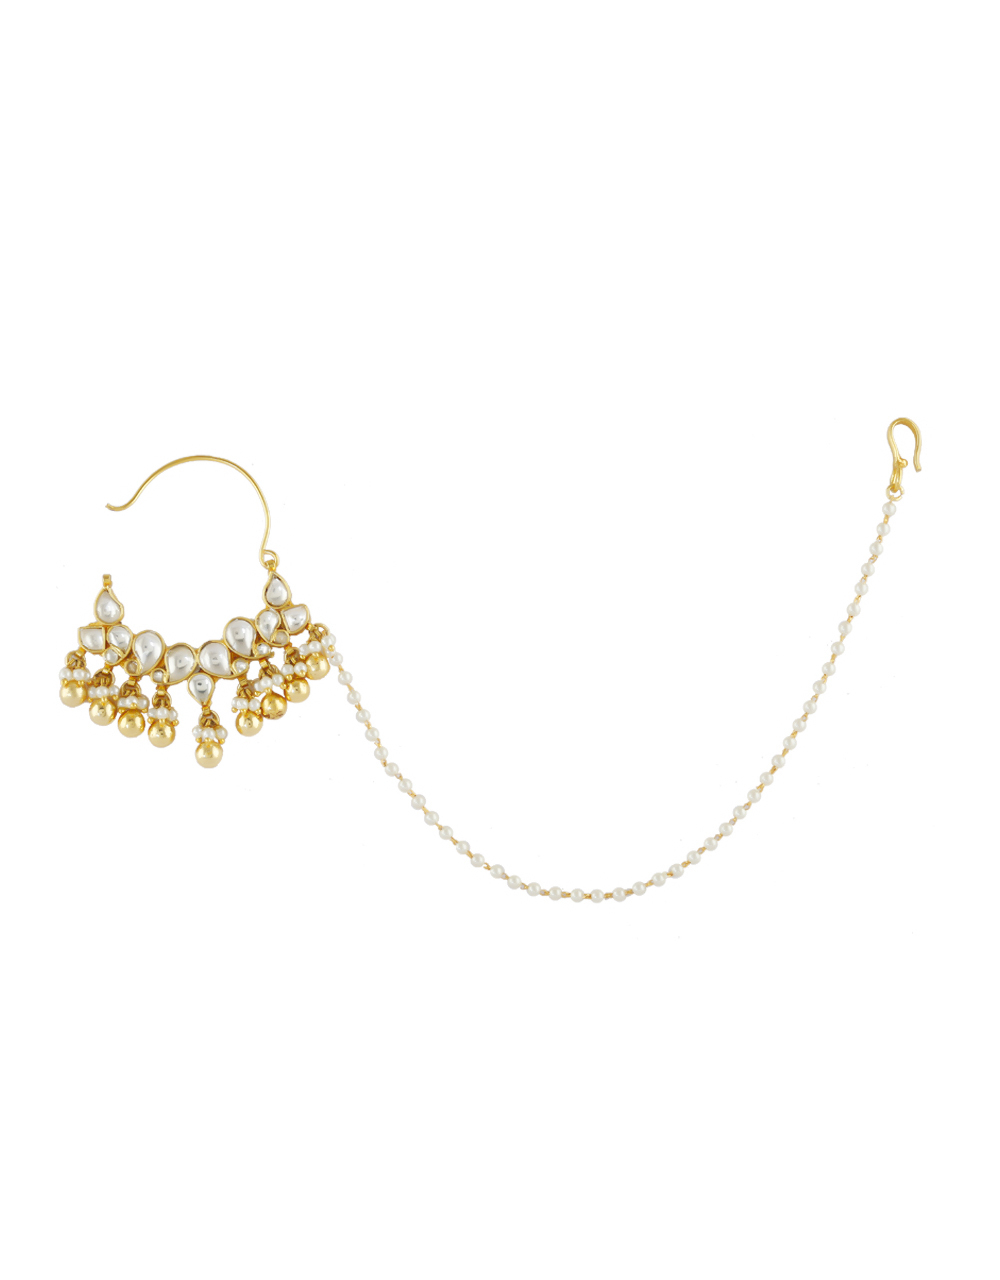 Buy Fashionable Gold Finish Kundan Pearls Styled Designer Nose